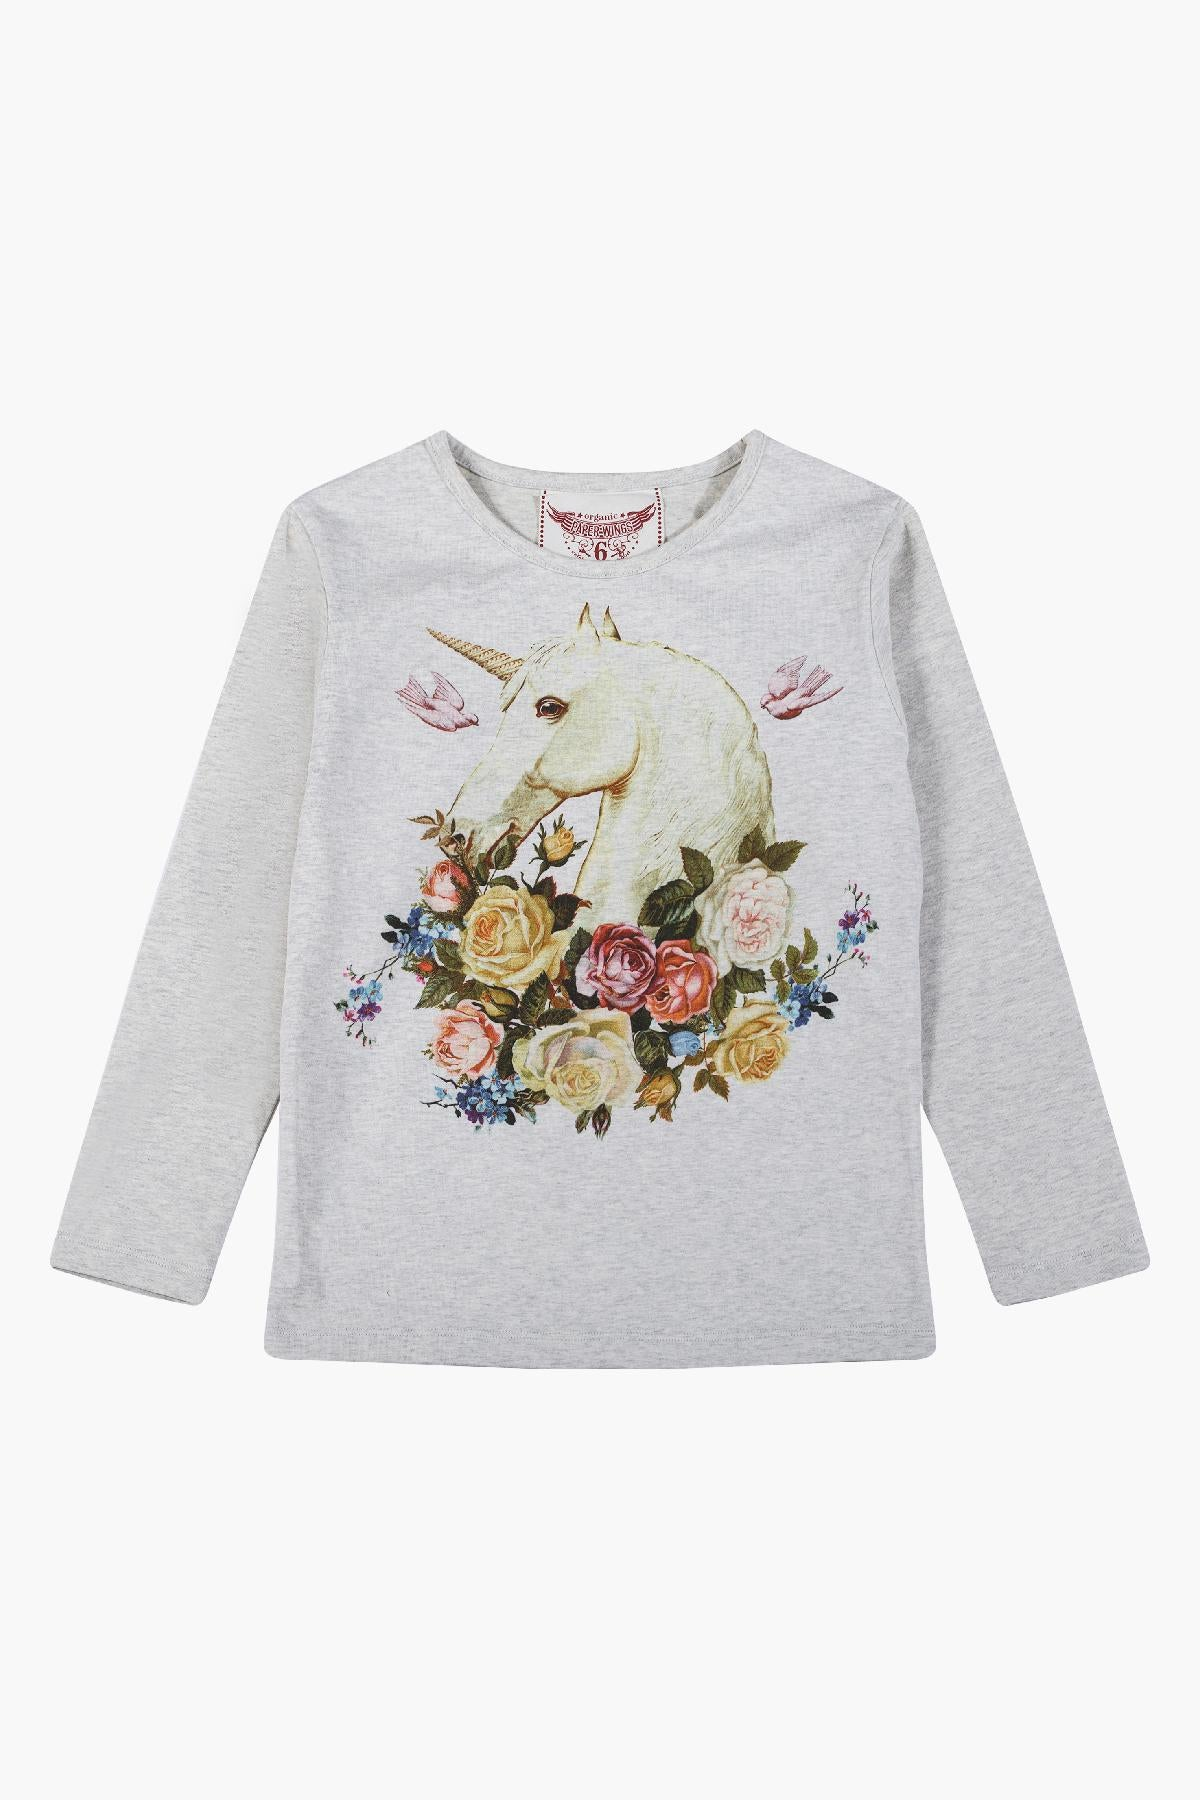 Paper Wings Rose Unicorn Girls Tee